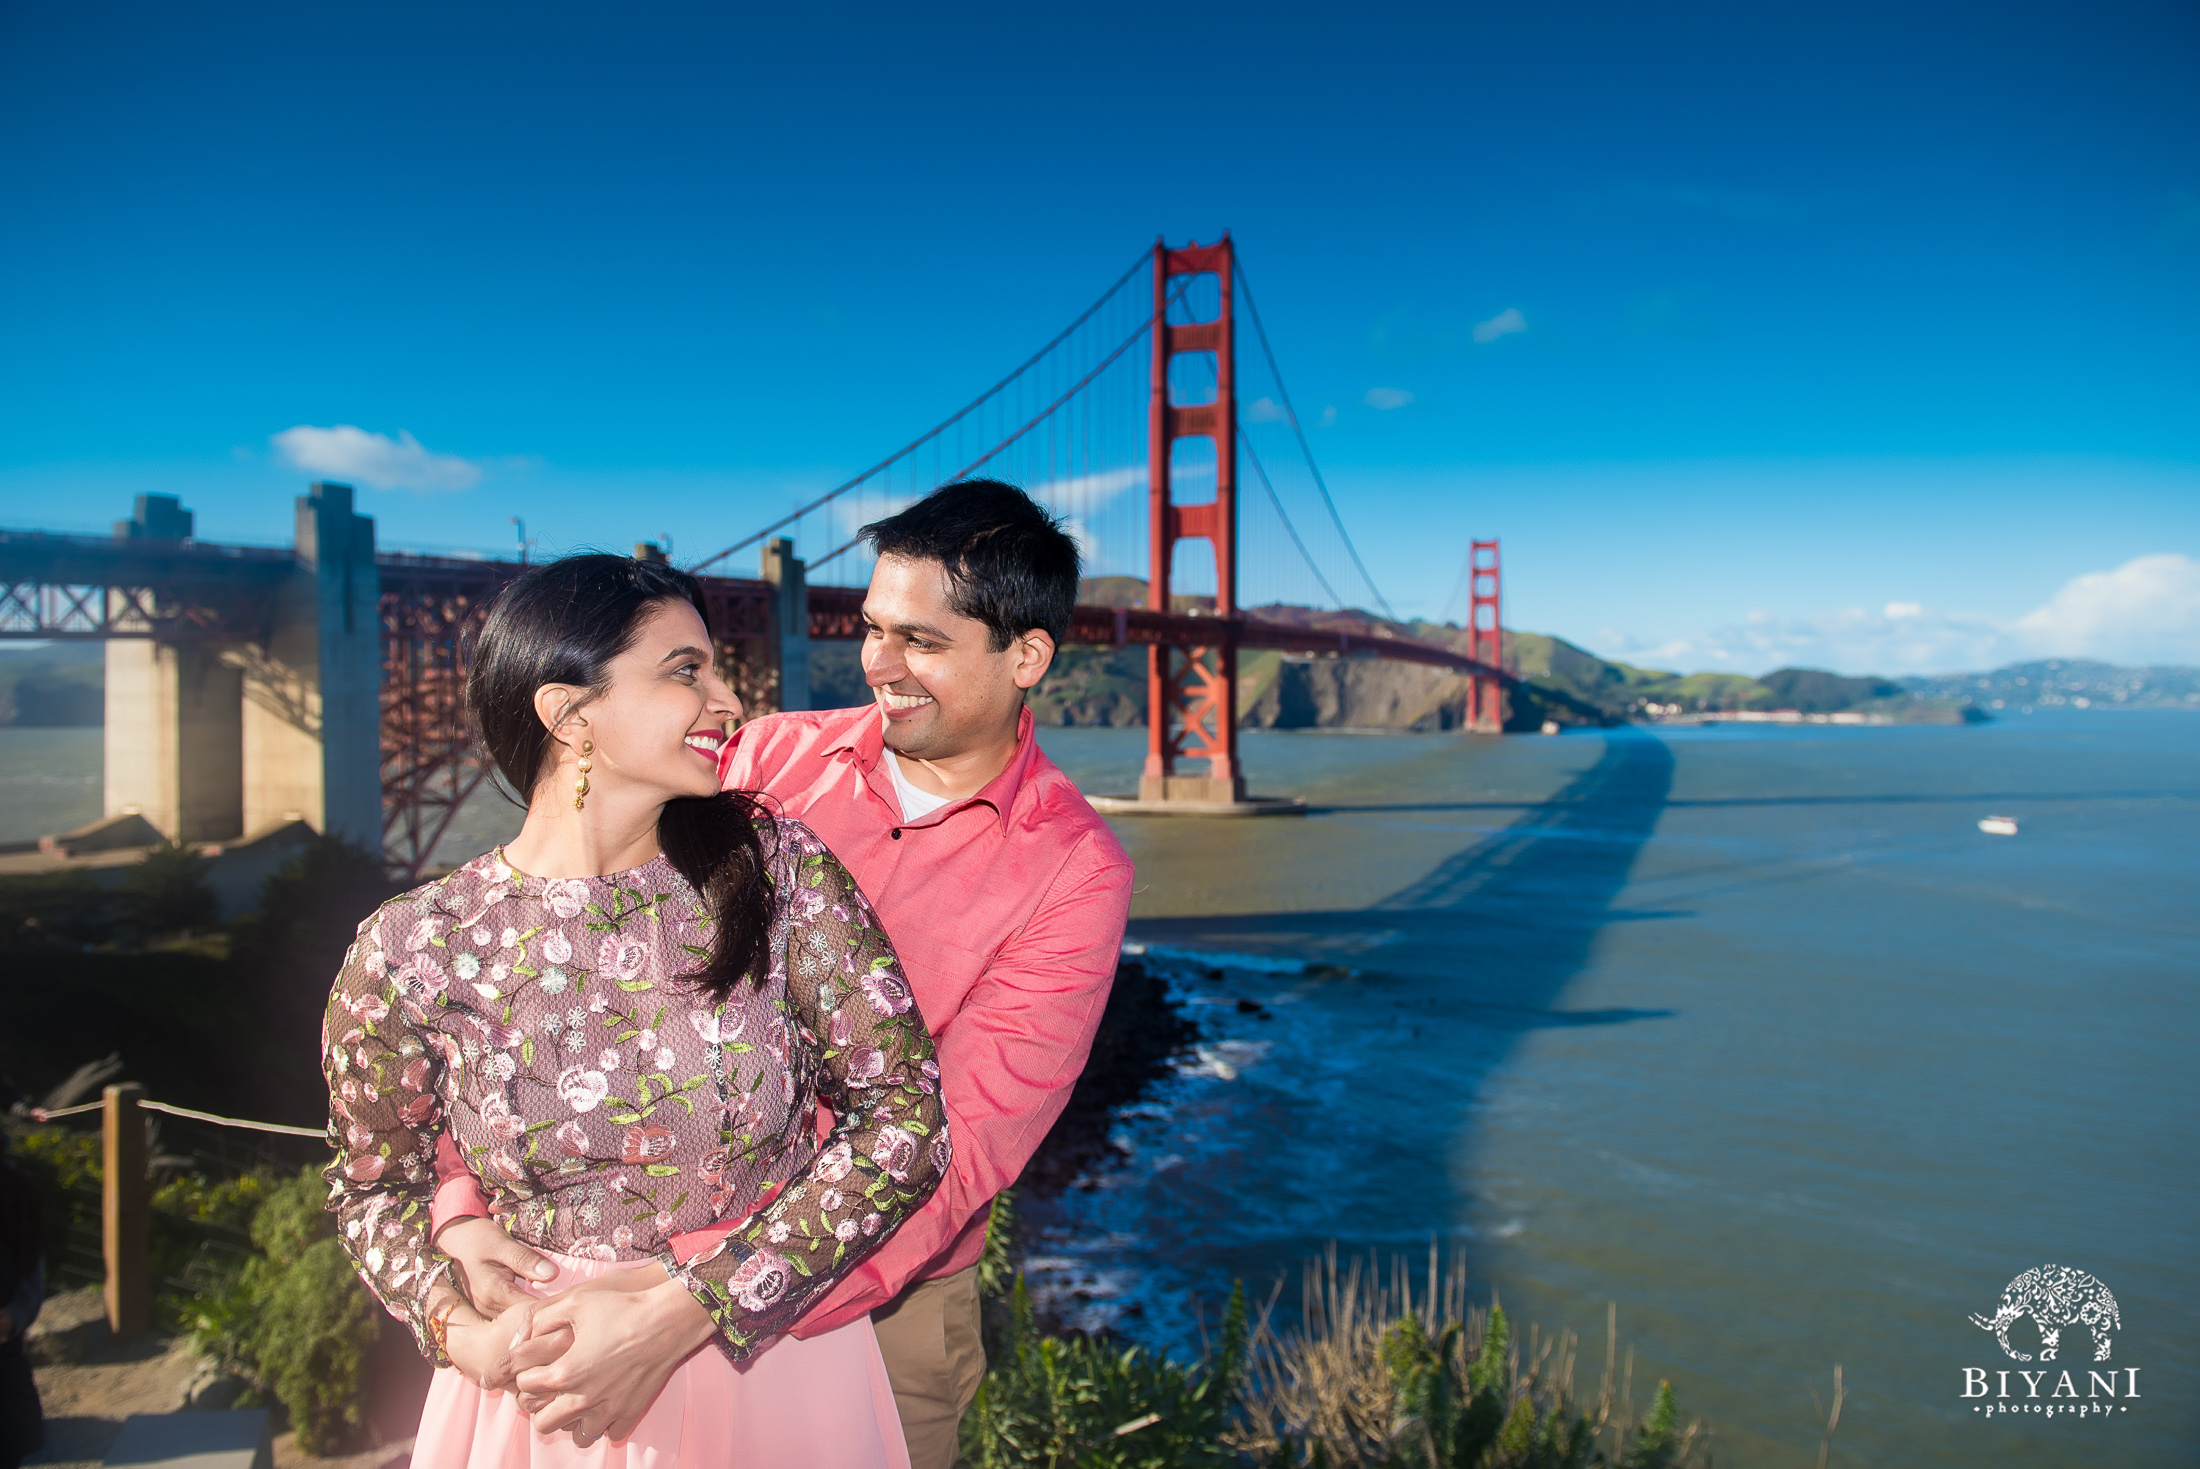 Engagement photo shoot in front of golden gate bridge in San Francisco during the day